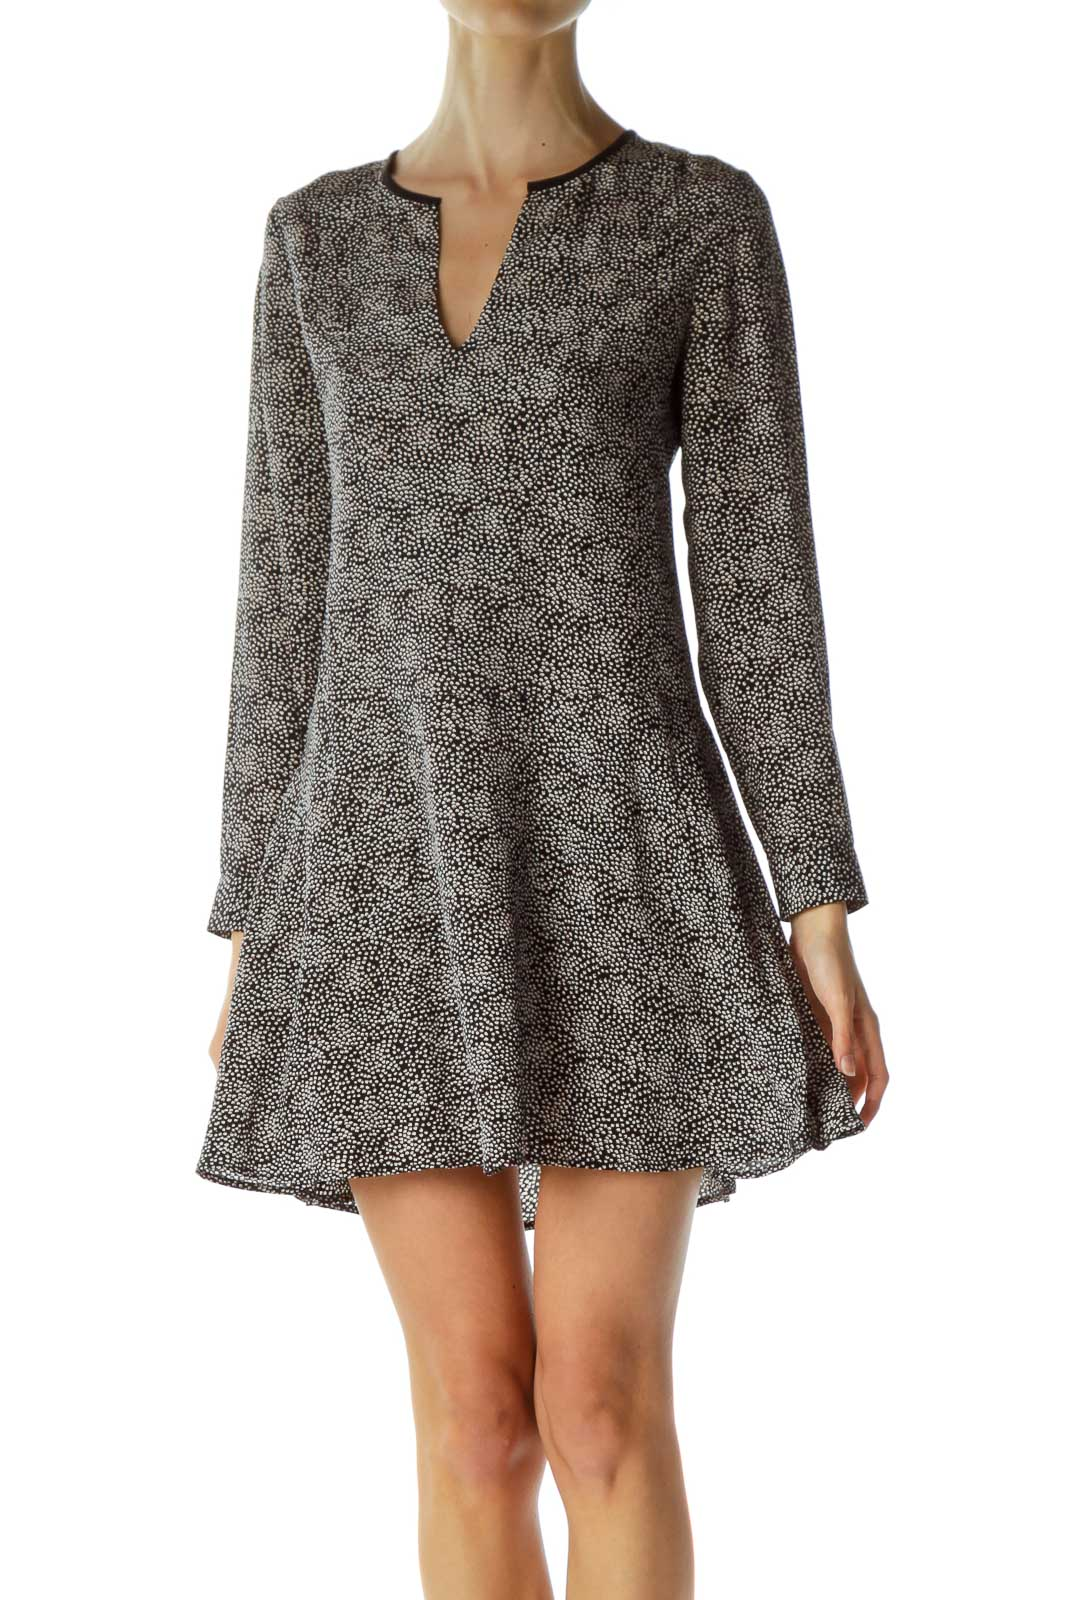 Black White Long Sleeve Work Dress